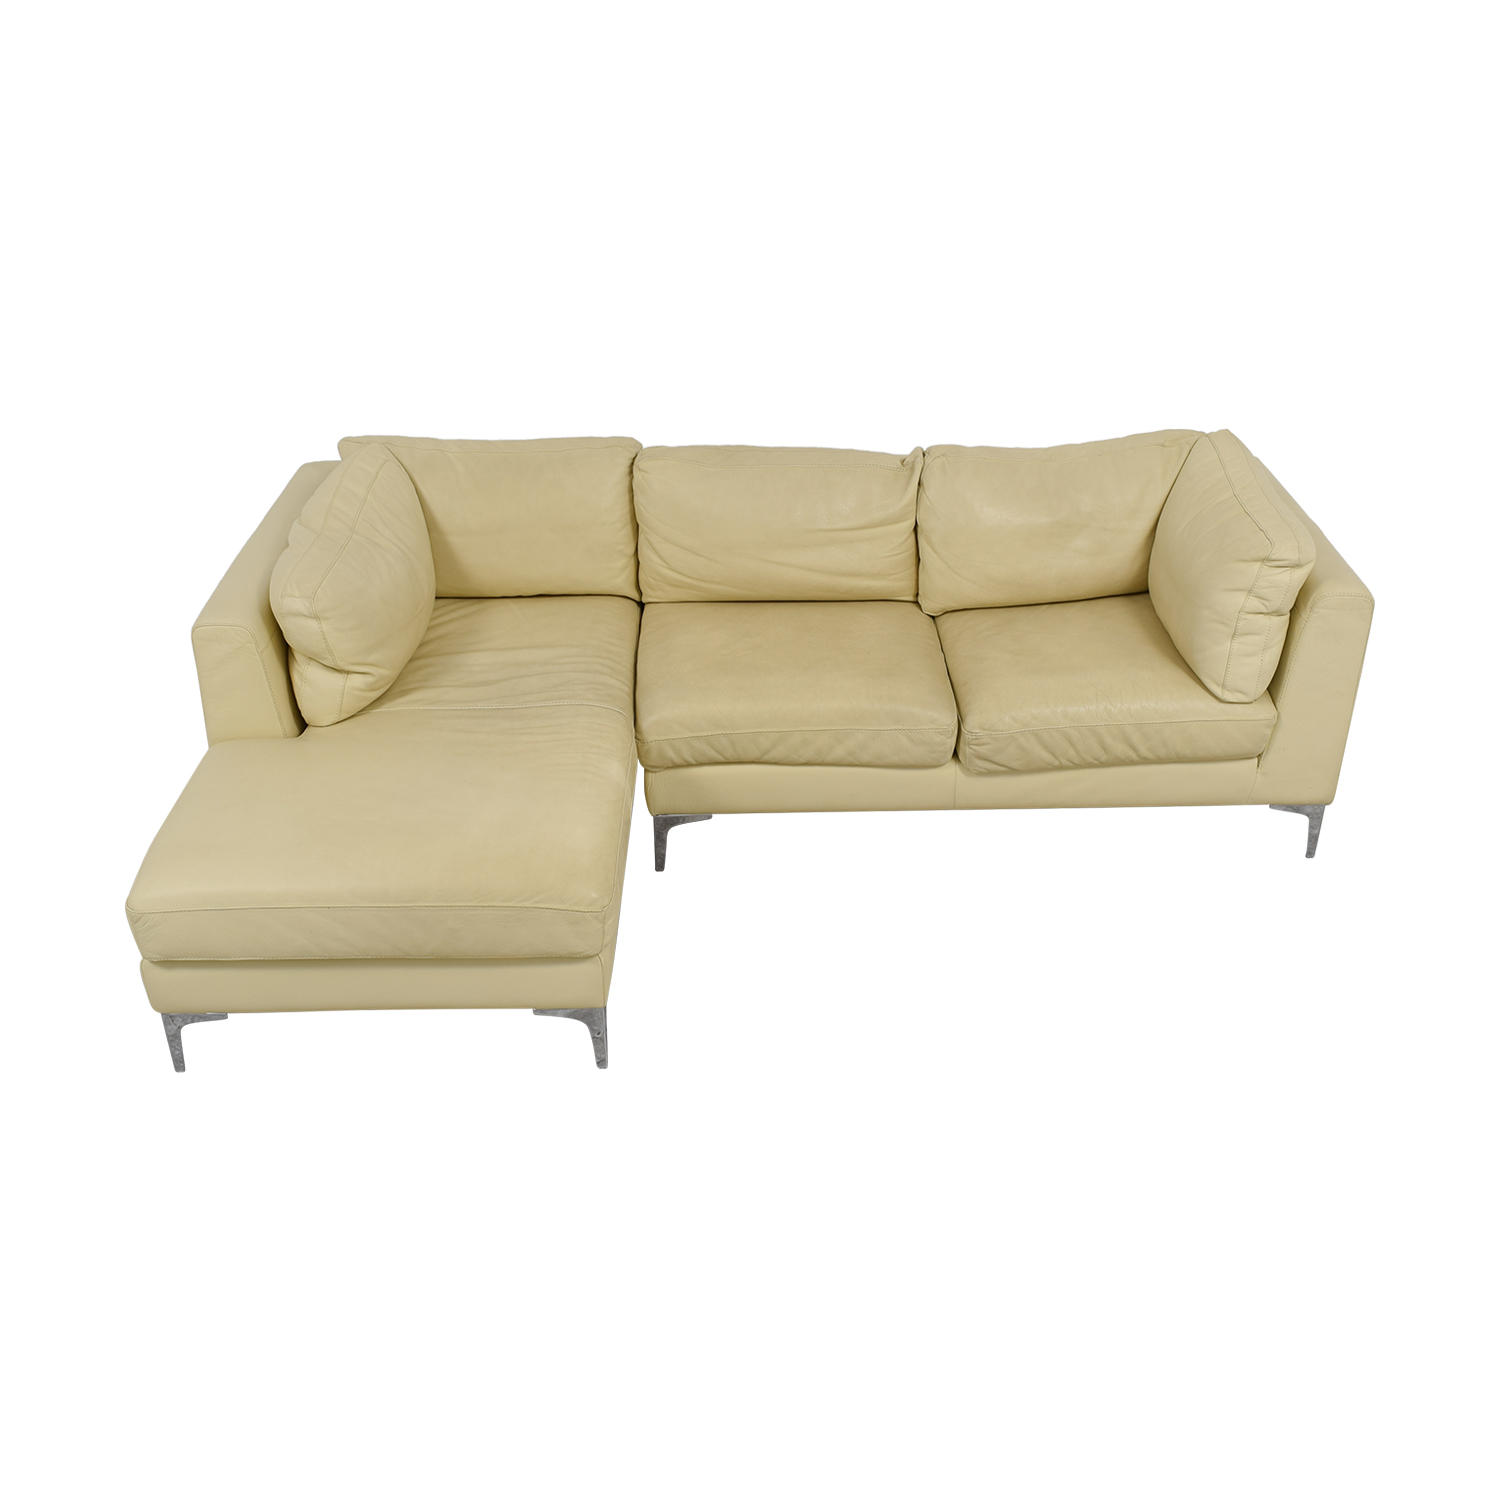 Design Within Reach Design Within Reach Cream Leather Chaise Sectional on sale